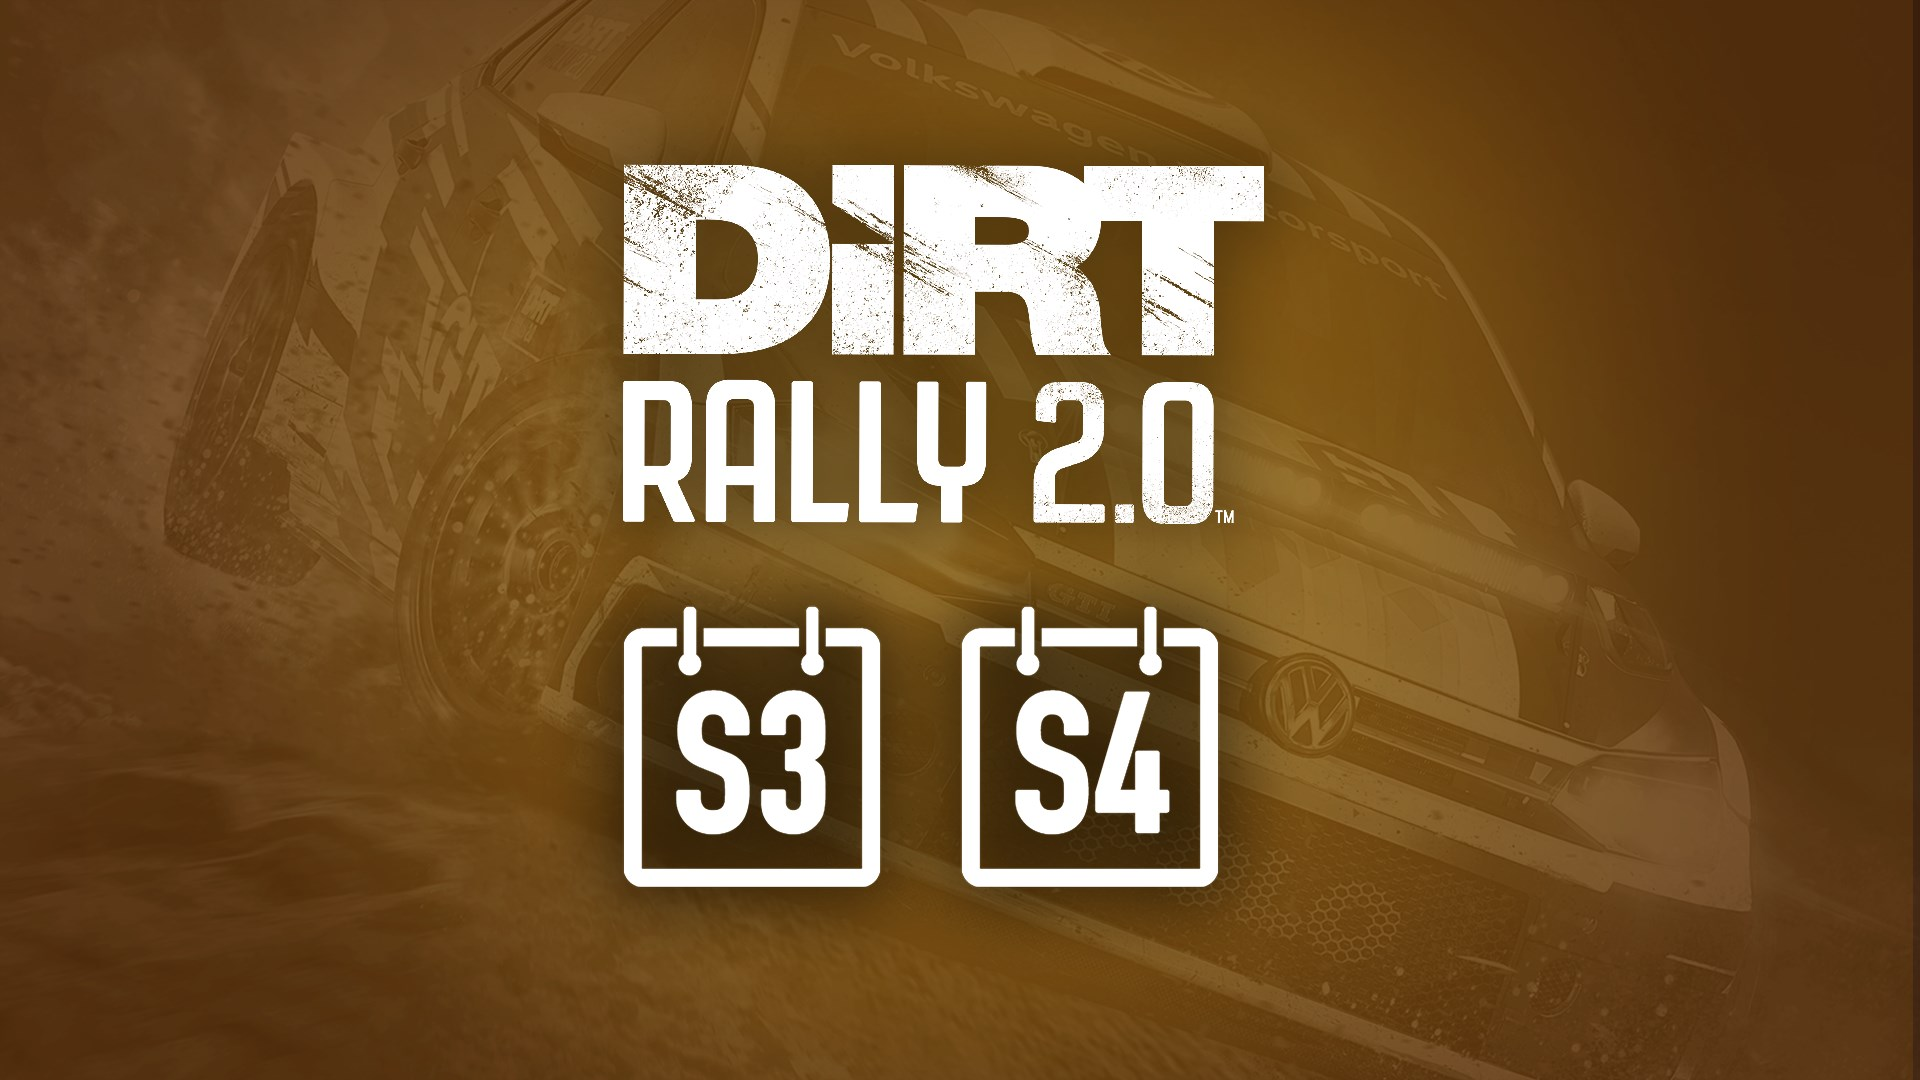 DiRT Rally 2.0 Deluxe Content Pack 2.0 (Seasons 3 and 4)